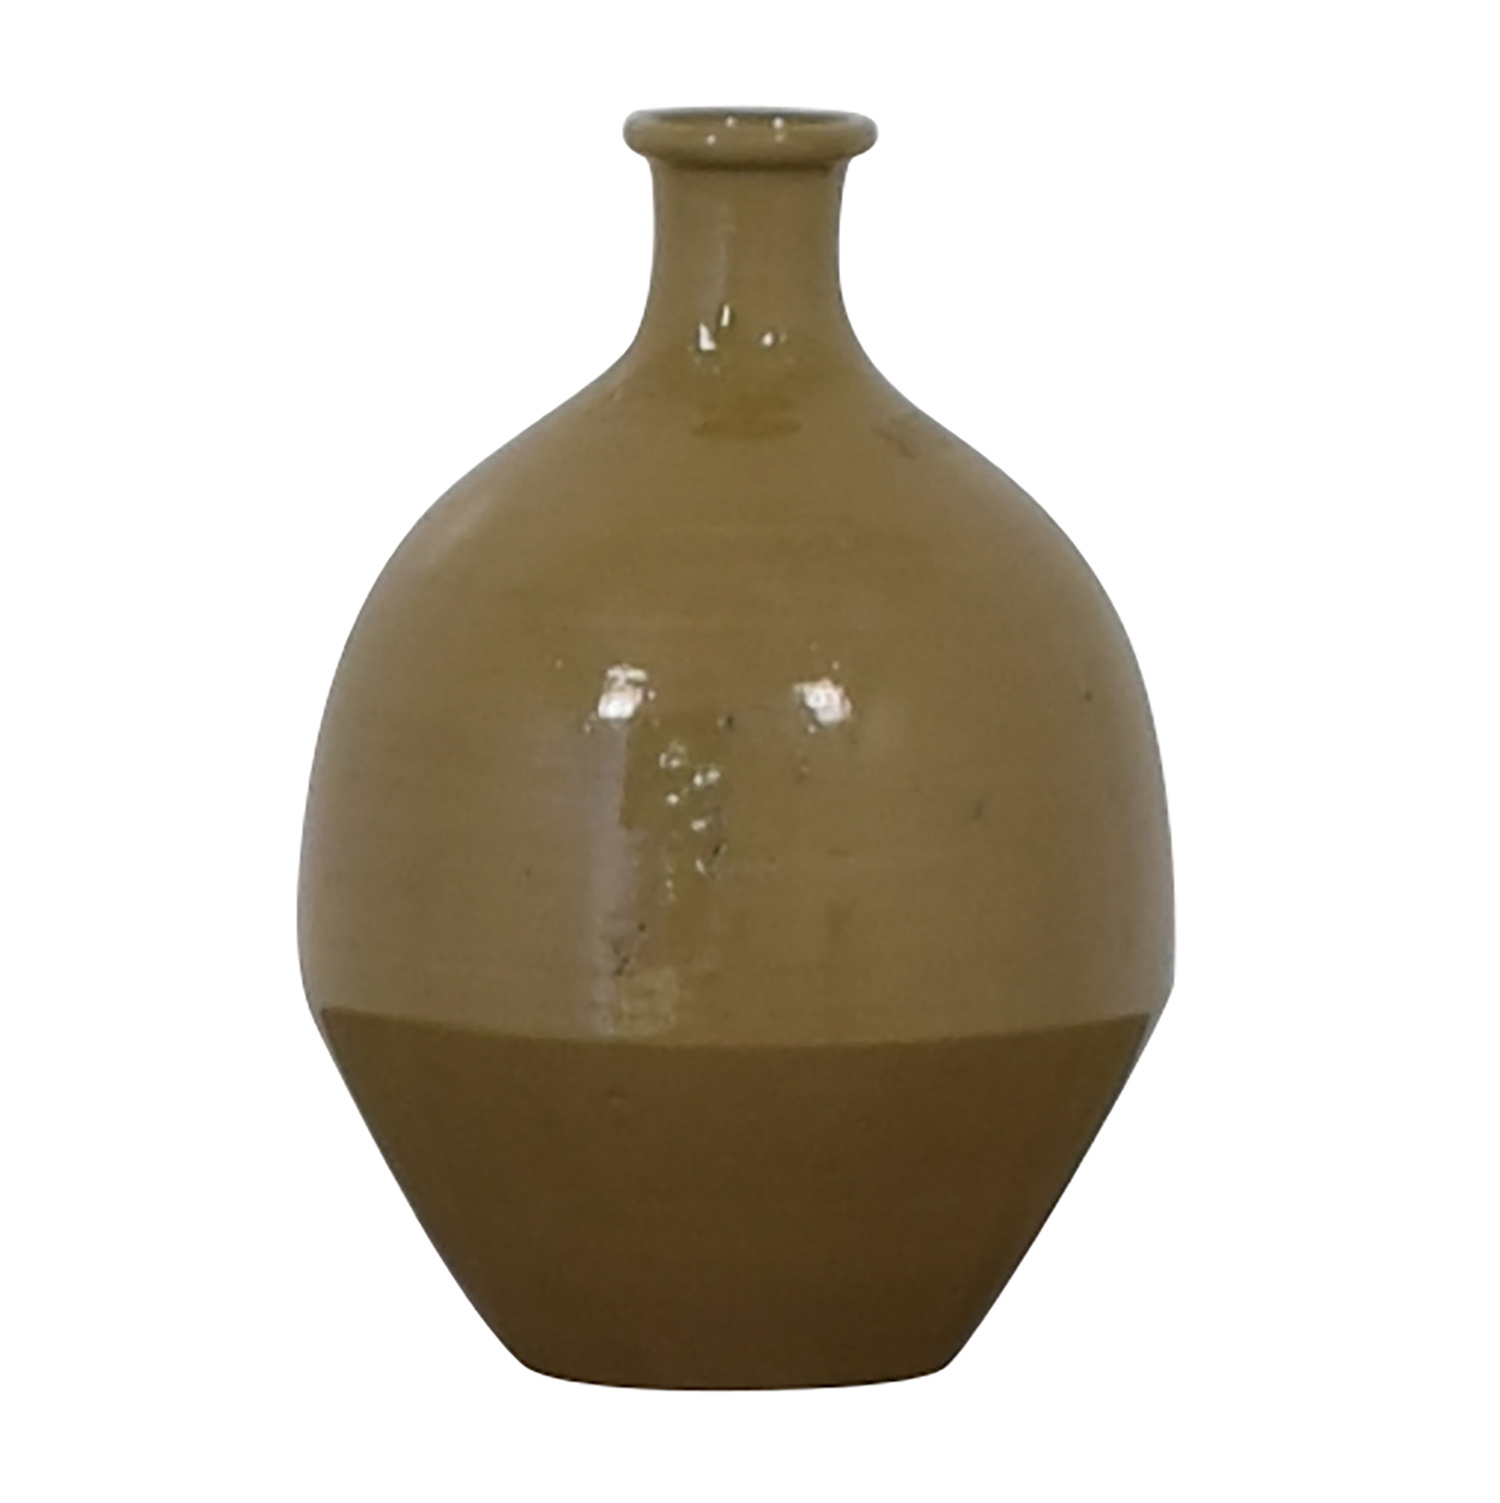 Pottery Barn Beige Ceramic Vase / Decorative Accents